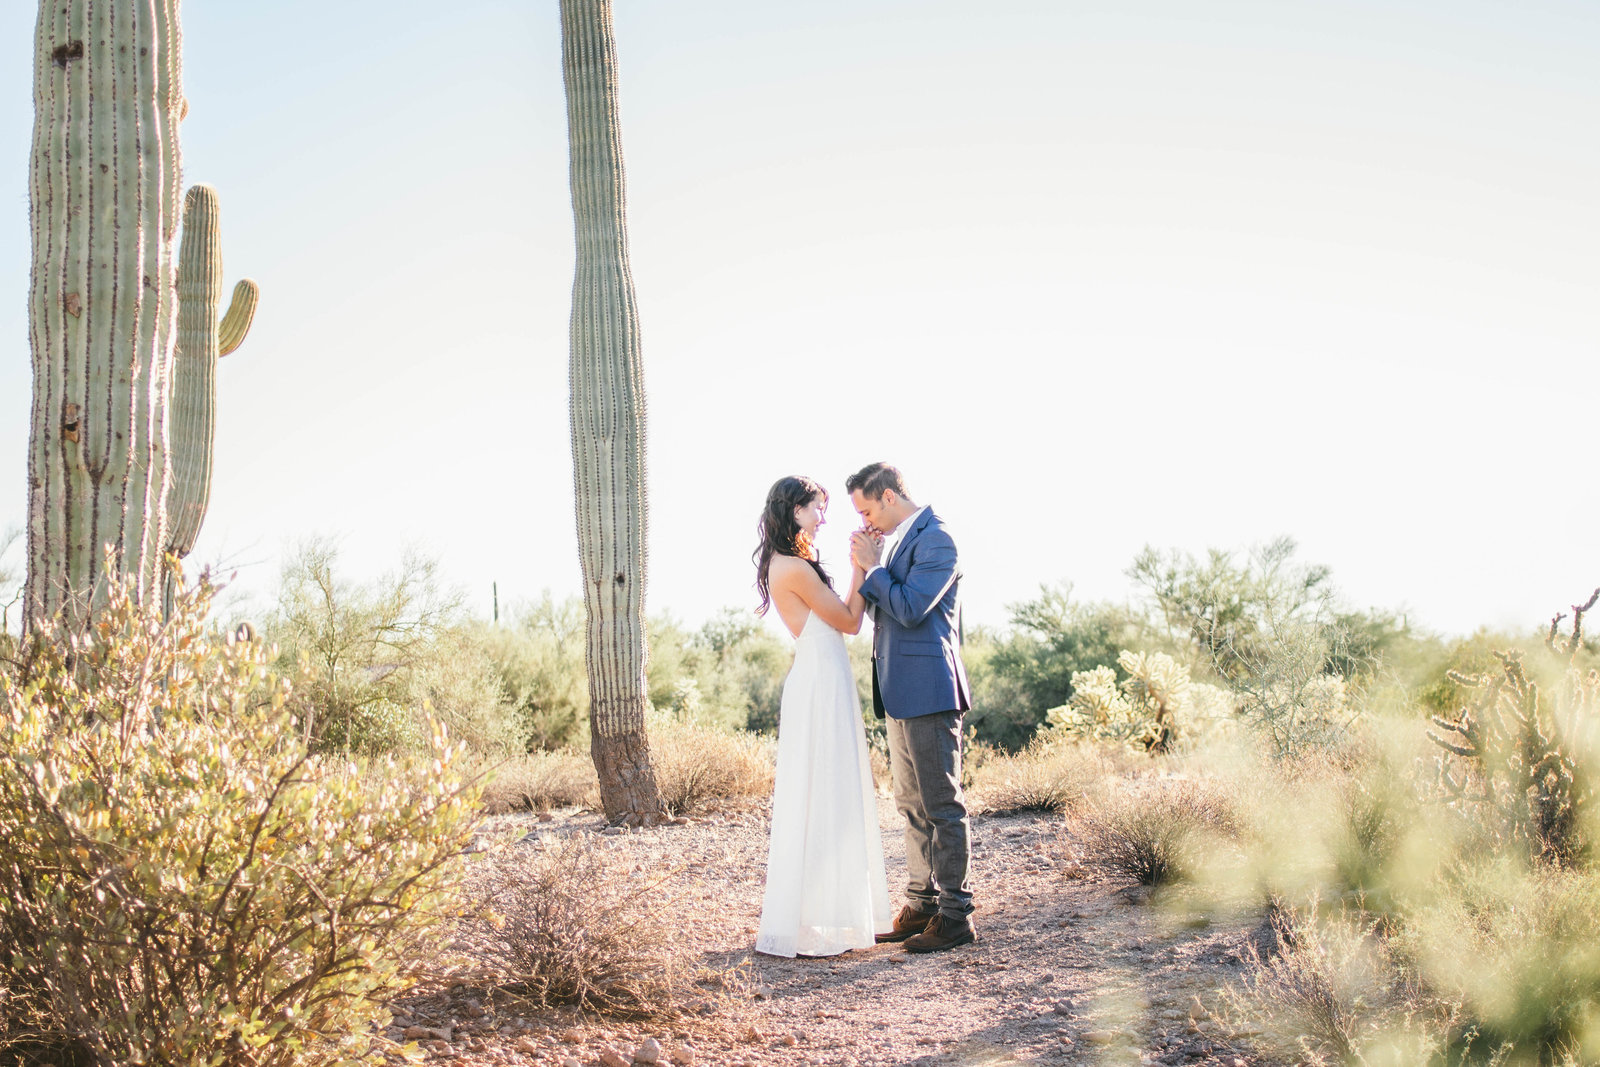 Phoenix wedding photographer, Sarah Horne, specializes in classic, timeless, and romantic wedding photography.